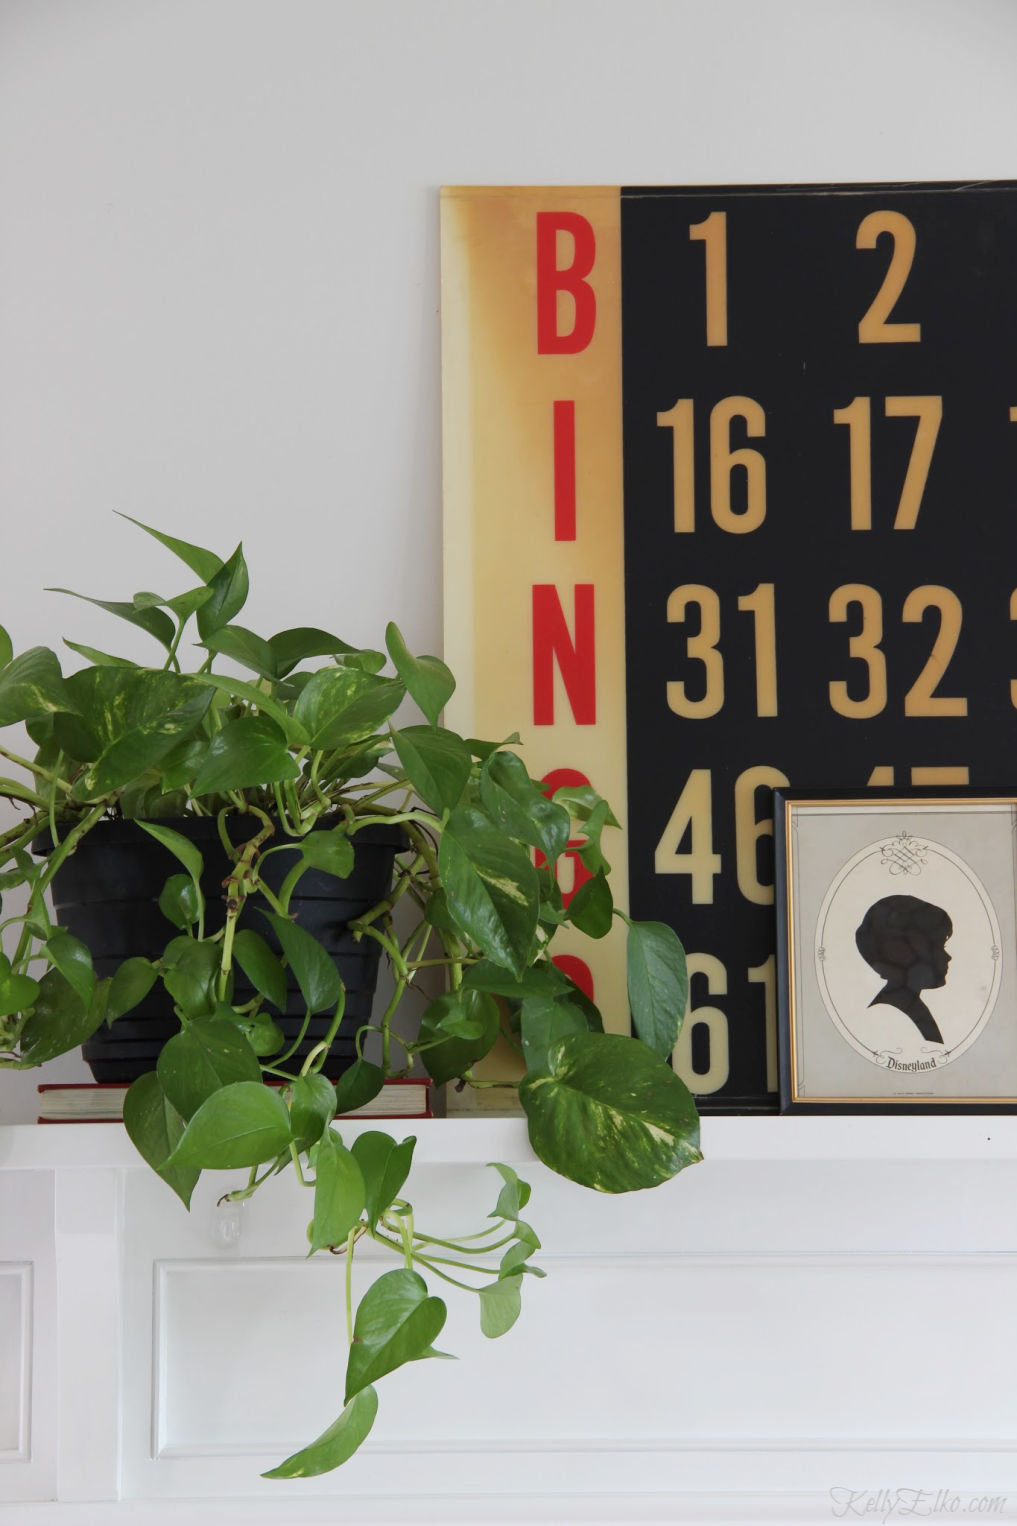 Love this vintage inspired mantel in black and white with touches of green from a pothos plant kellyelko.com #mantel #manteldecor #pothos #houseplants #plantlady #vintagedecor #vintagemantel #silhouette #bingo #thriftydecor #thrifteddecor #vintagemodern #farmhousedecor #kellyelko